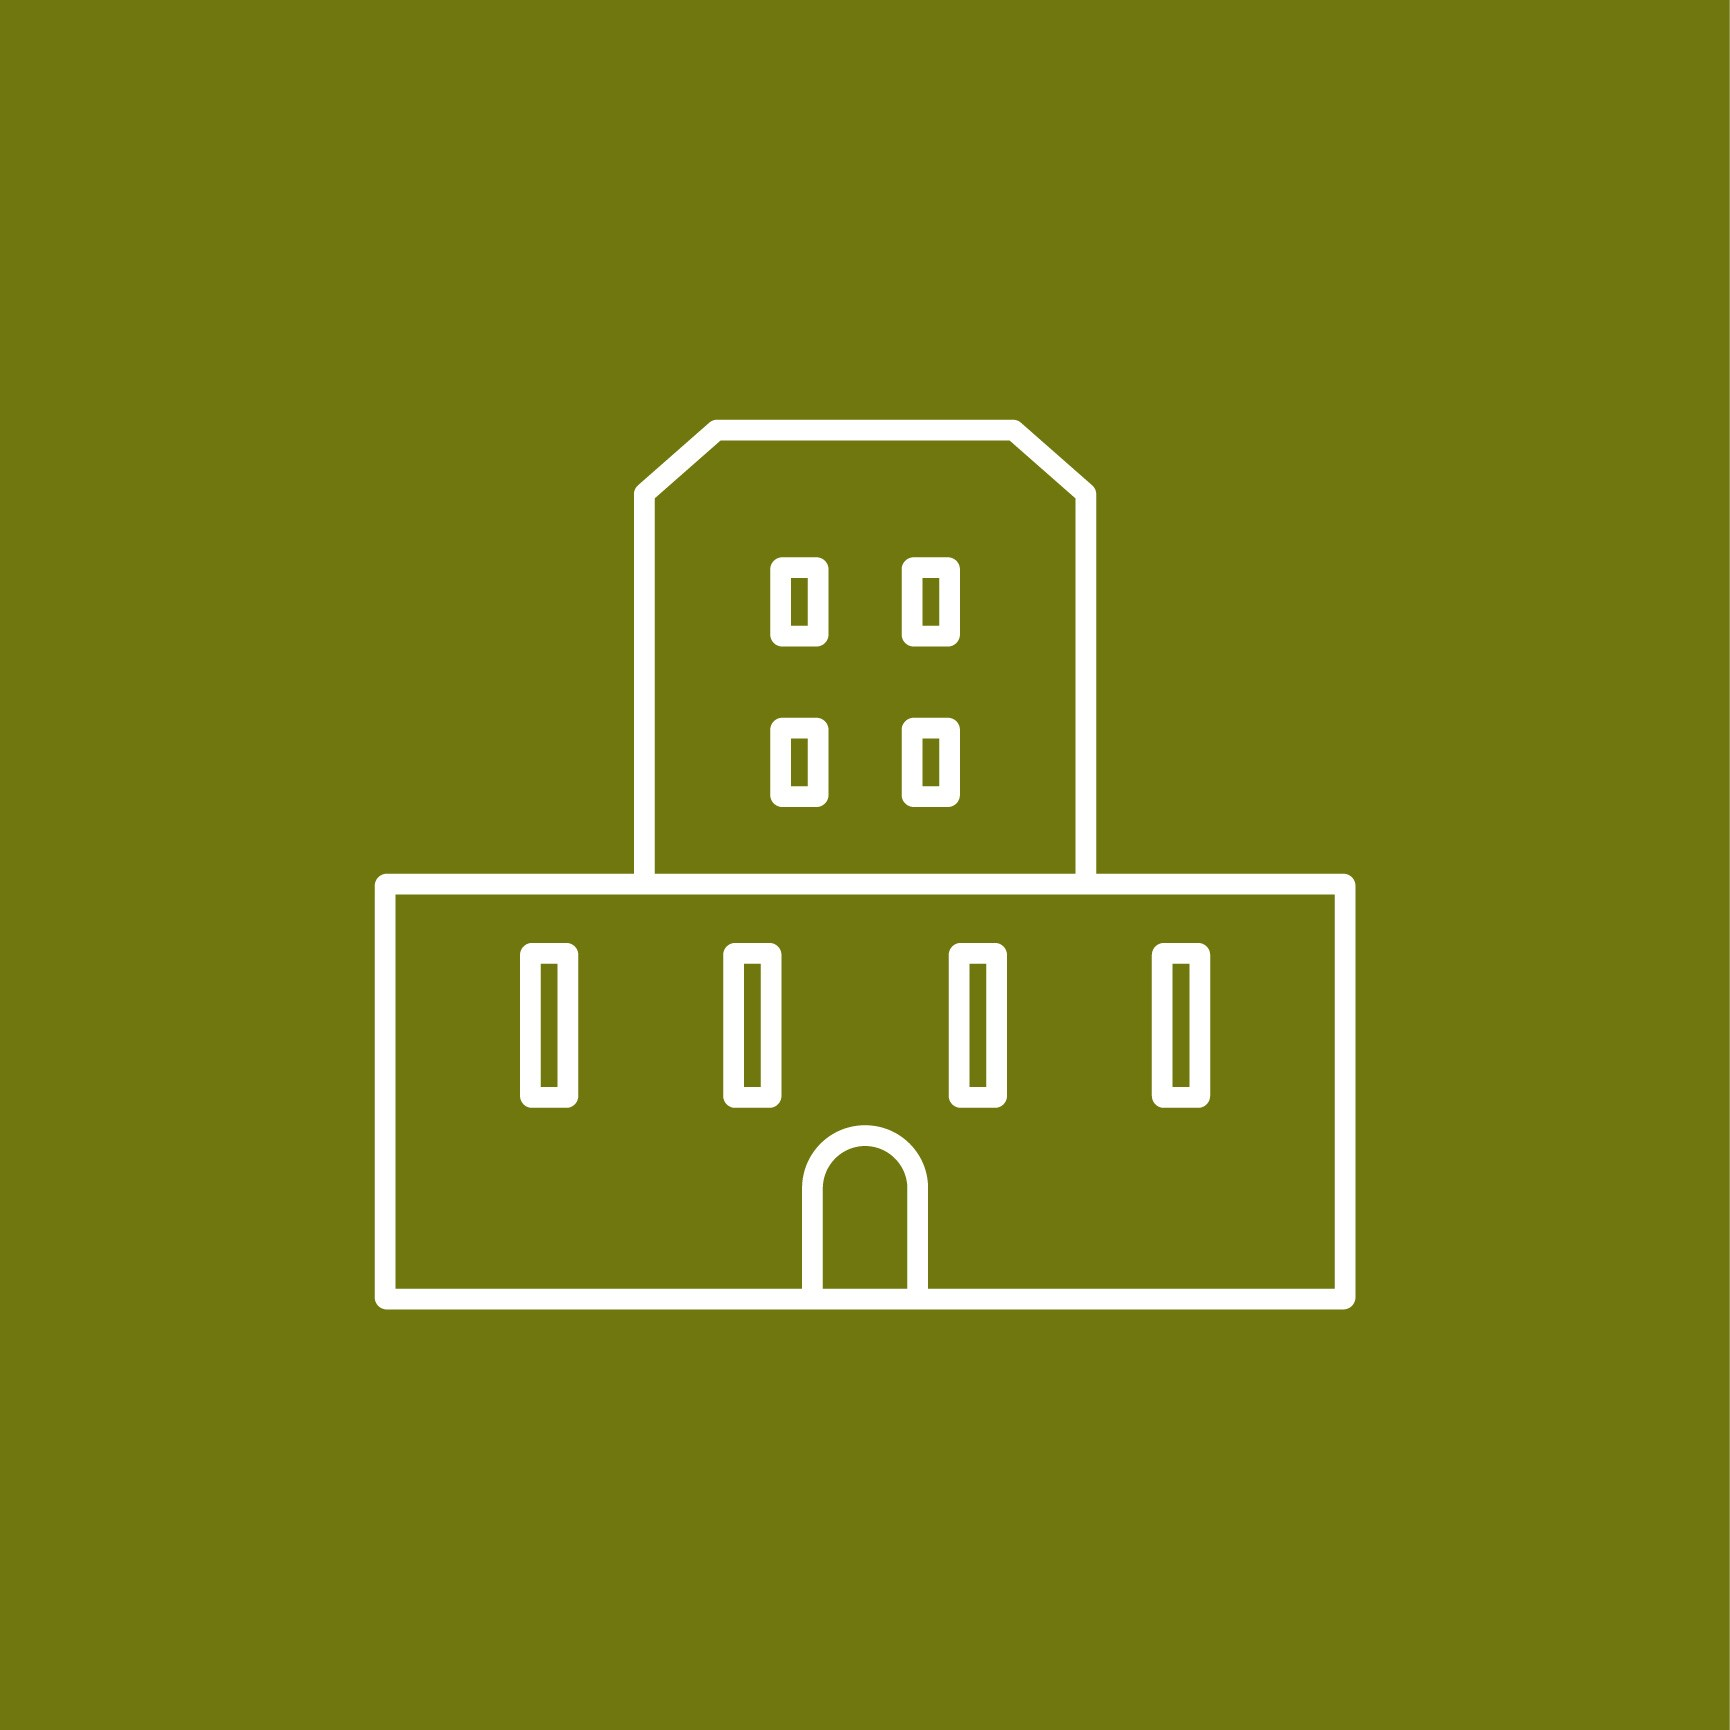 Icon for increasing Building Energy Efficiency